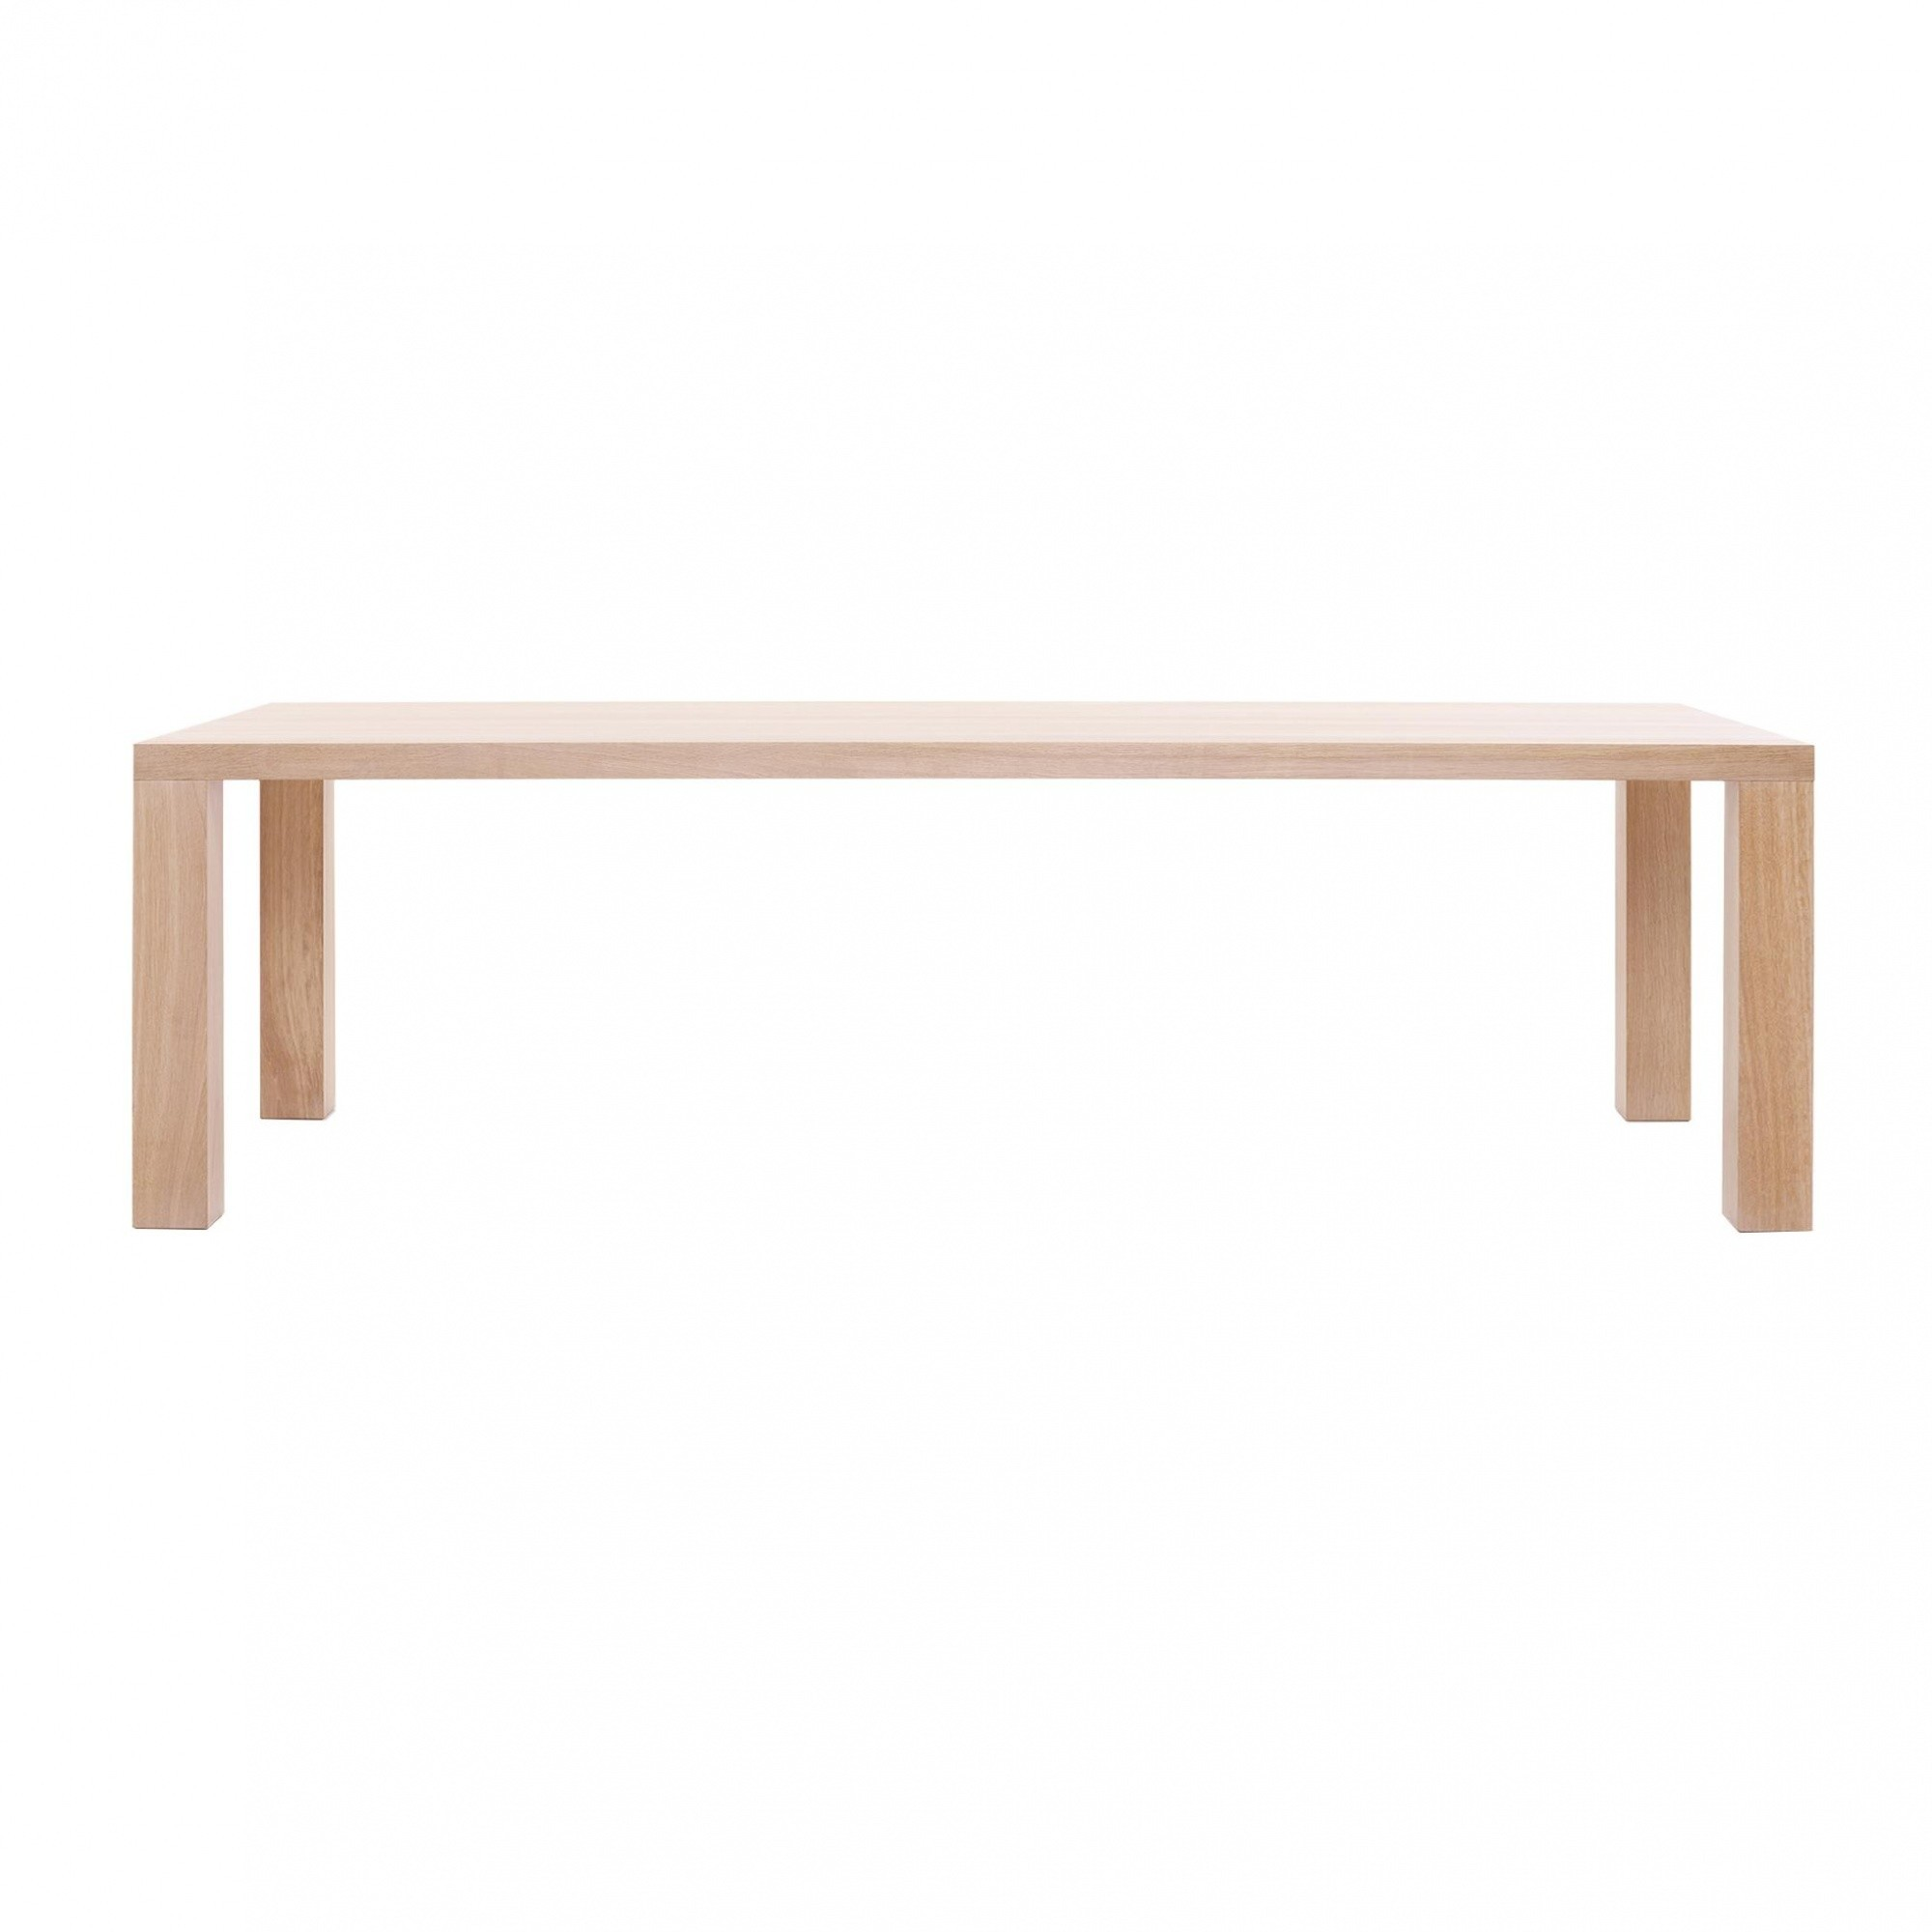 More Stato Dining Table 250cm Ambientedirect